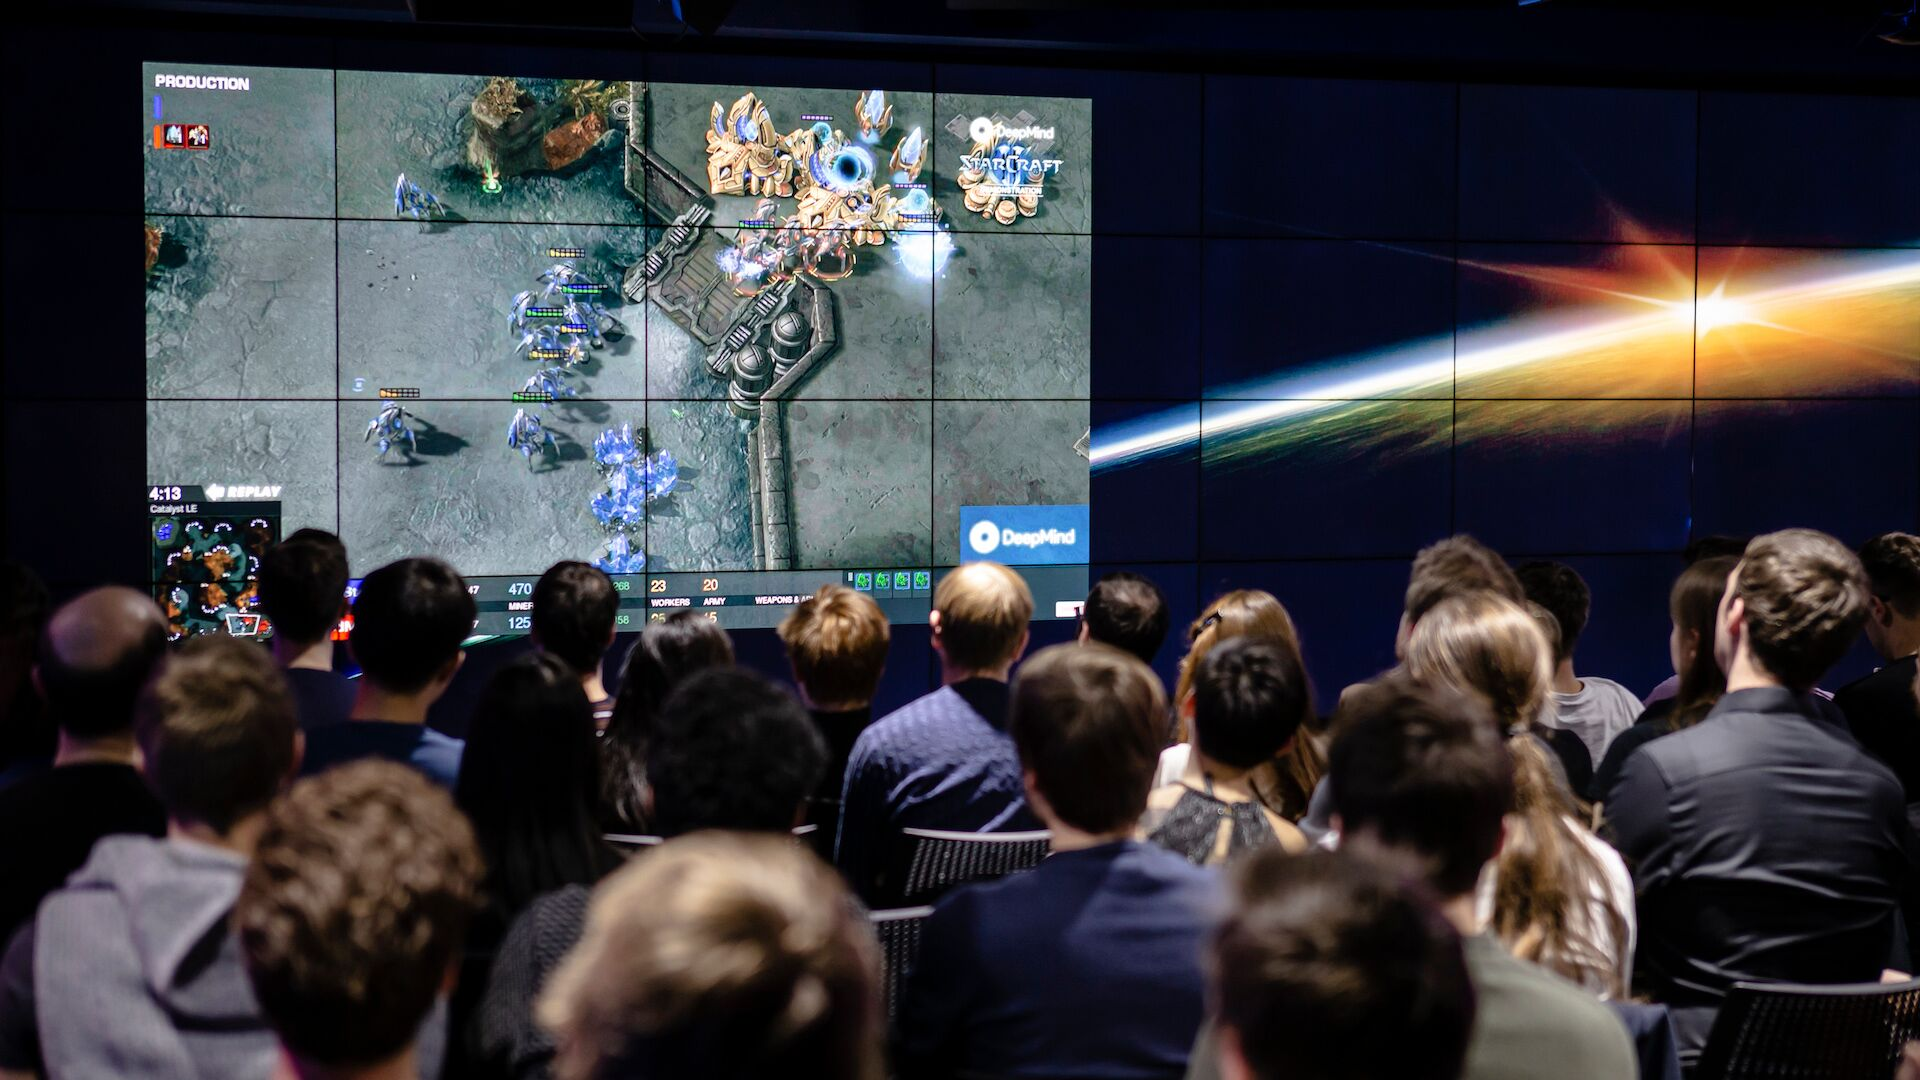 A closer look at DeepMind, the Google AI that's mastering StarCraft 2